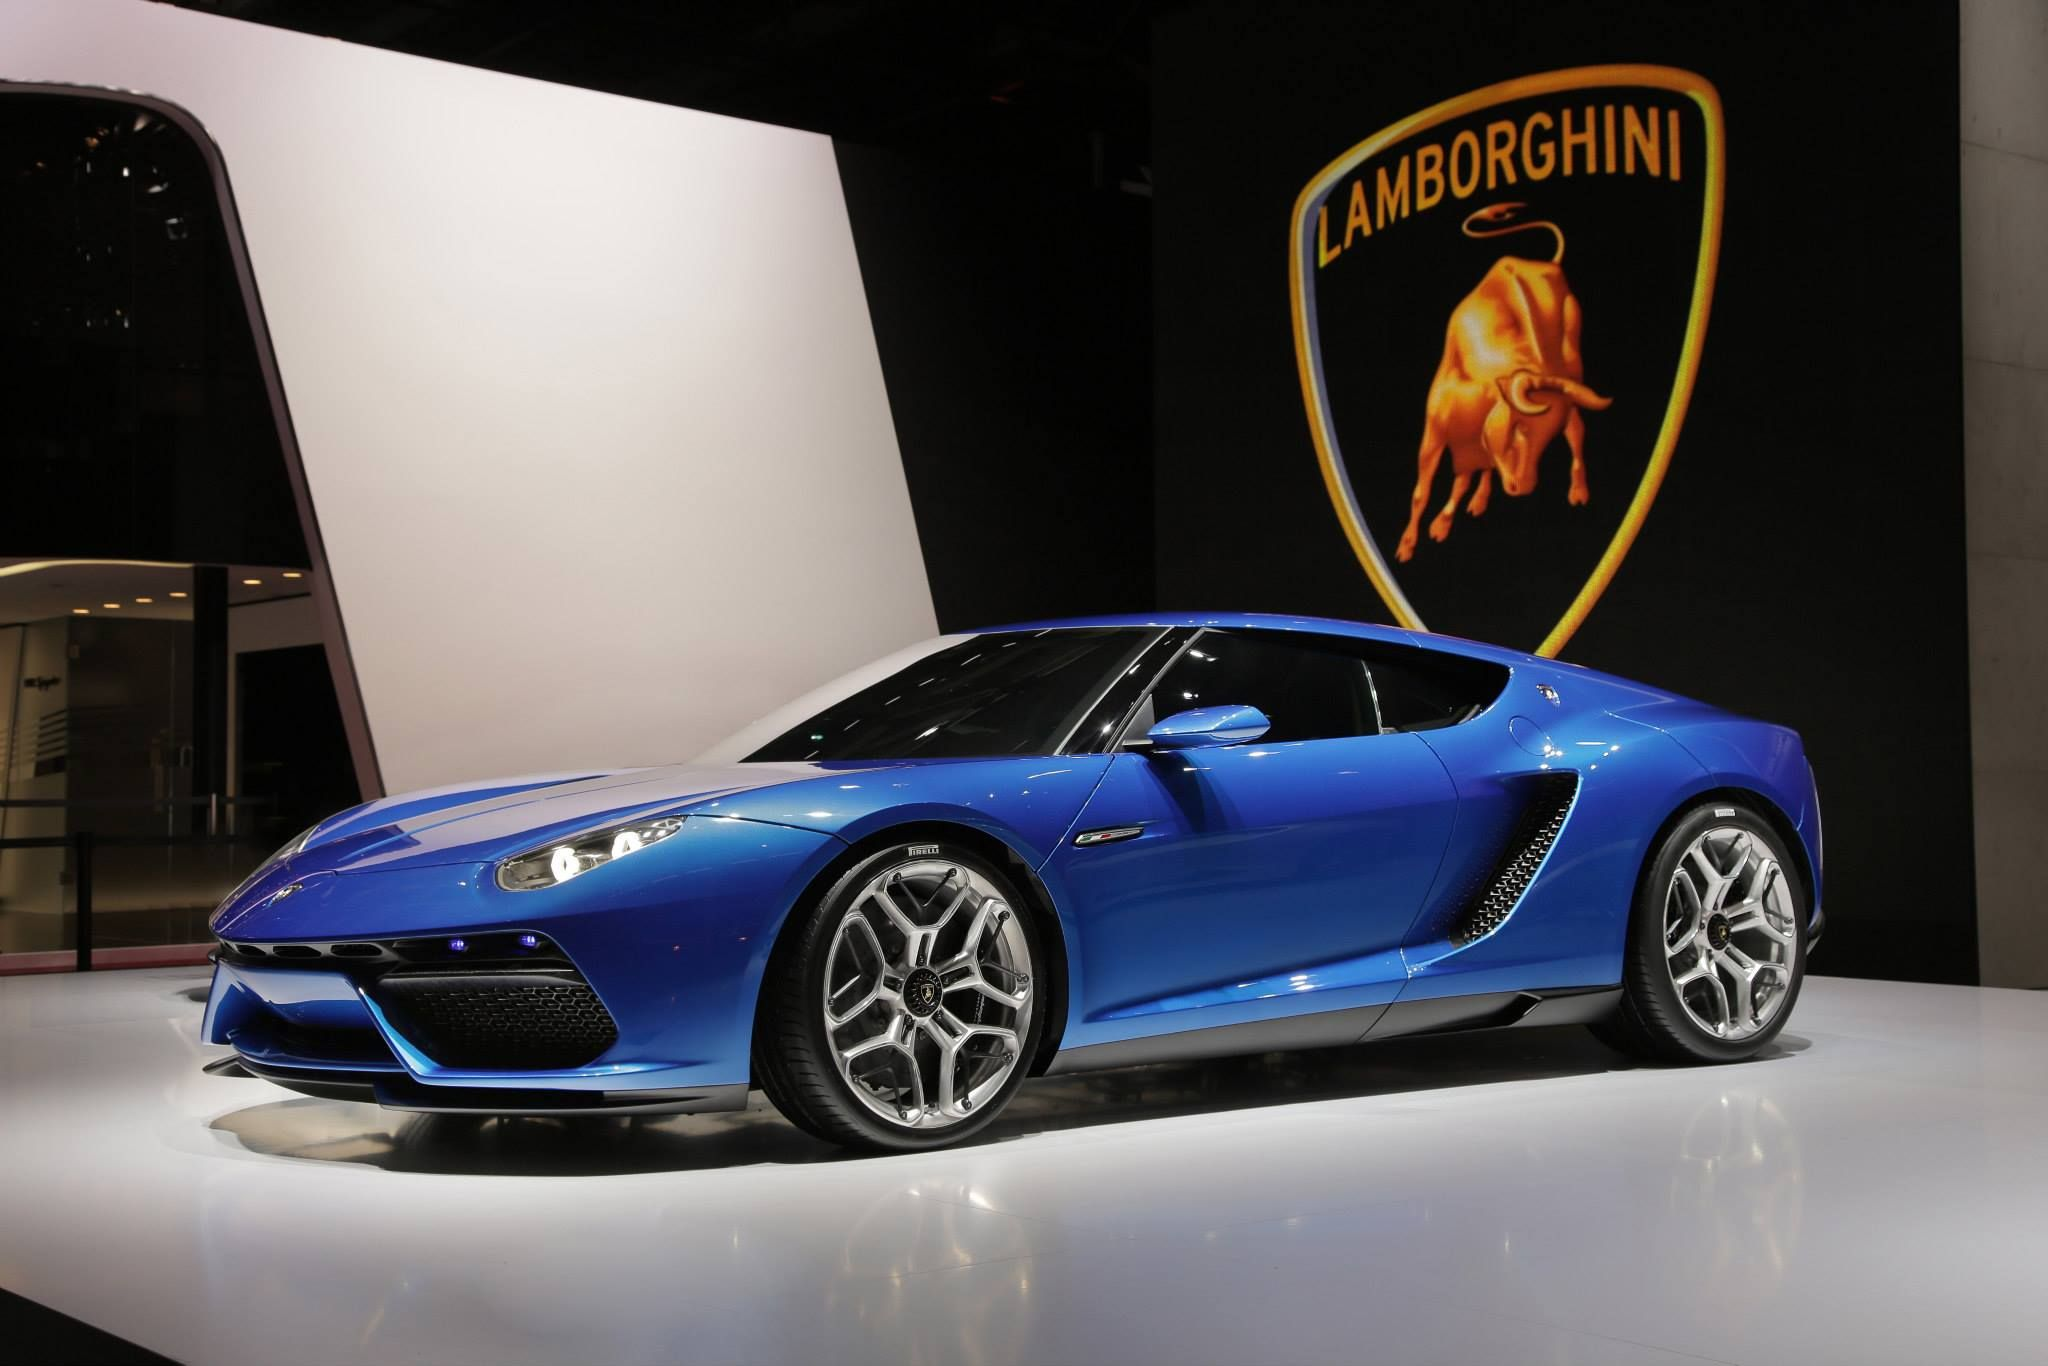 into n fibre formed performante large rather driven forged the can lamborghini huracan south of from quickly africa sheets be hurac than produced body short parts chopped are carbon which